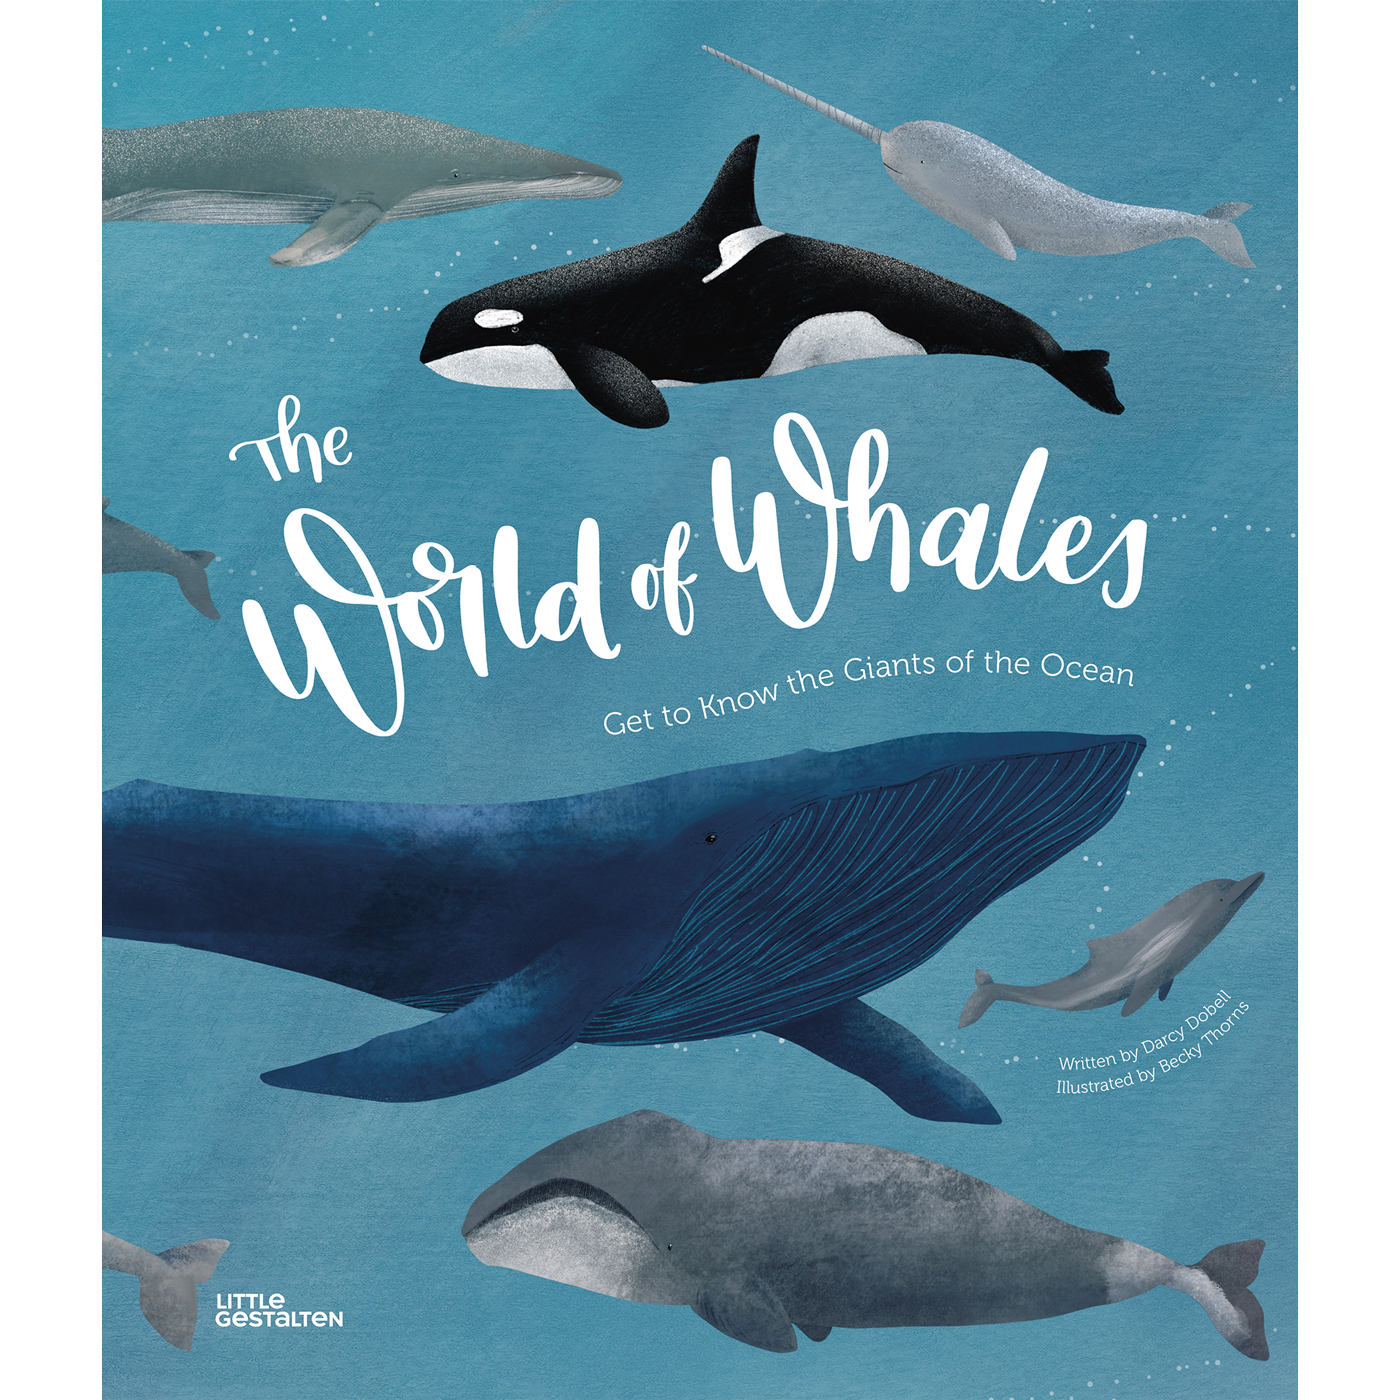 Whale enthusiast Becky Thorns talks to us about her proudest project, 'world of whales' and how she started out her freelancing career through his dream of illustration.